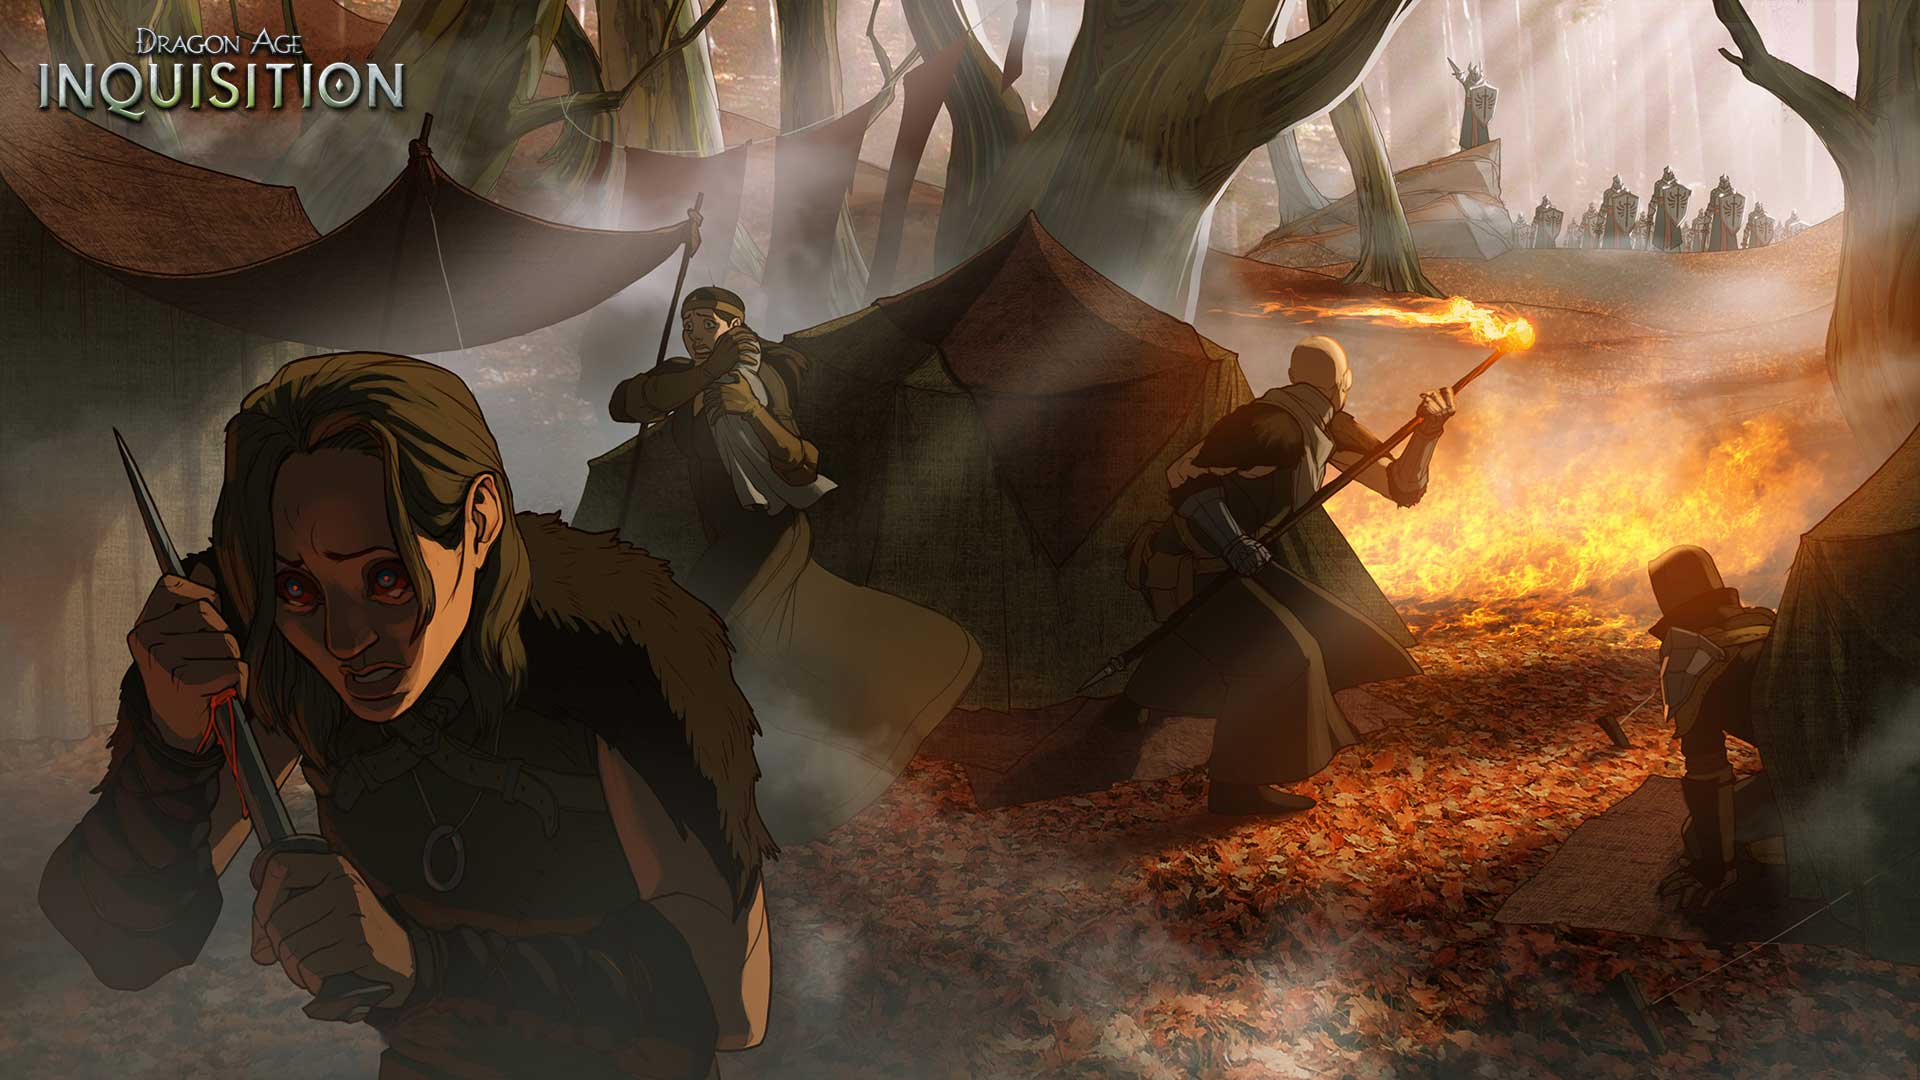 Blood Mages Breach Explosion Dragon Age Inquisition Concept Art 2more